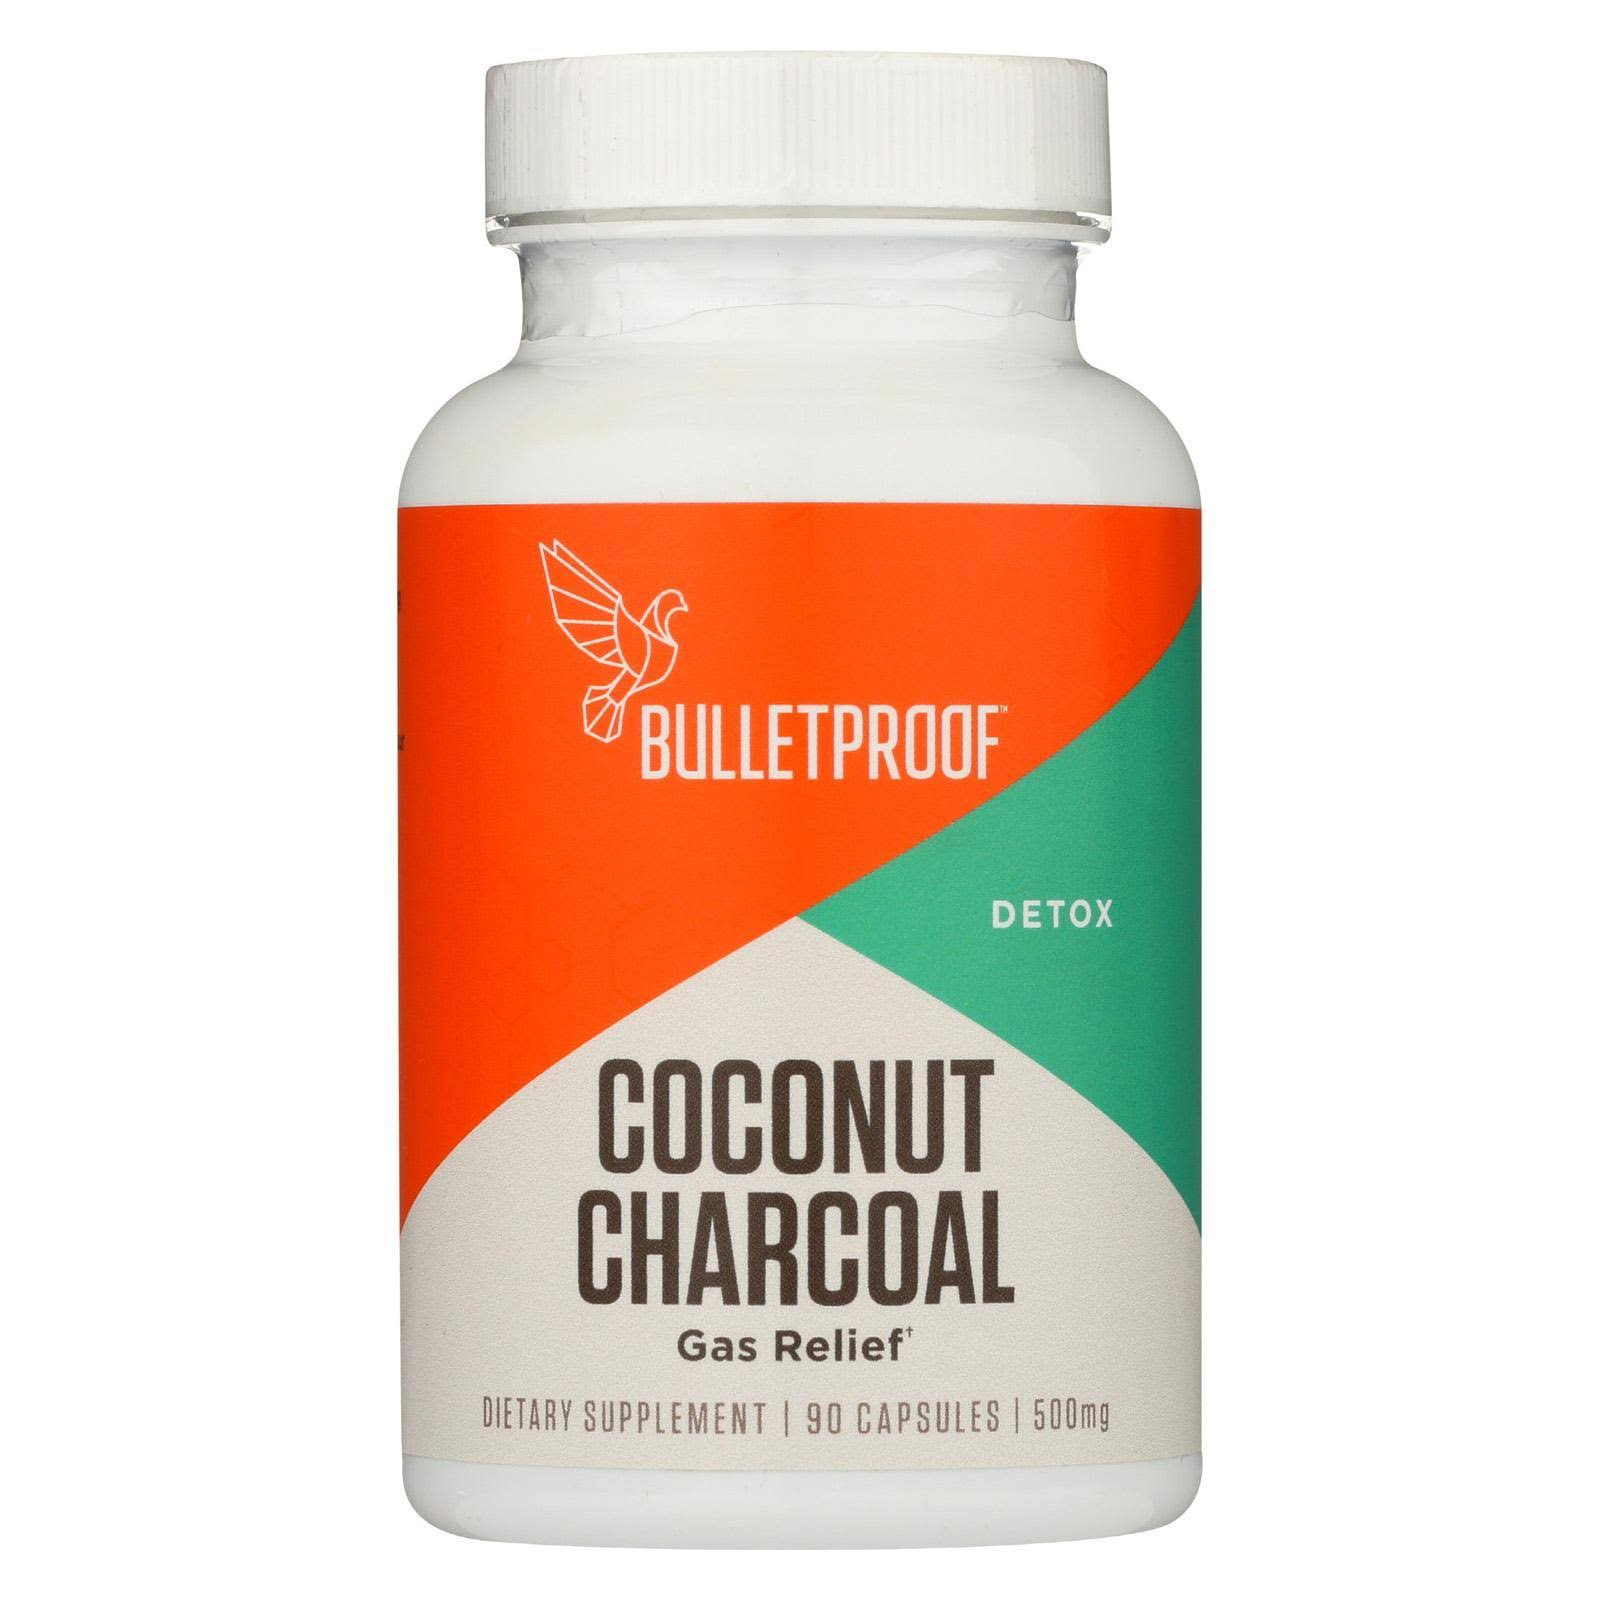 Bulletproof Coconut Charcoal Detox Gas Relief Supplements - 90ct